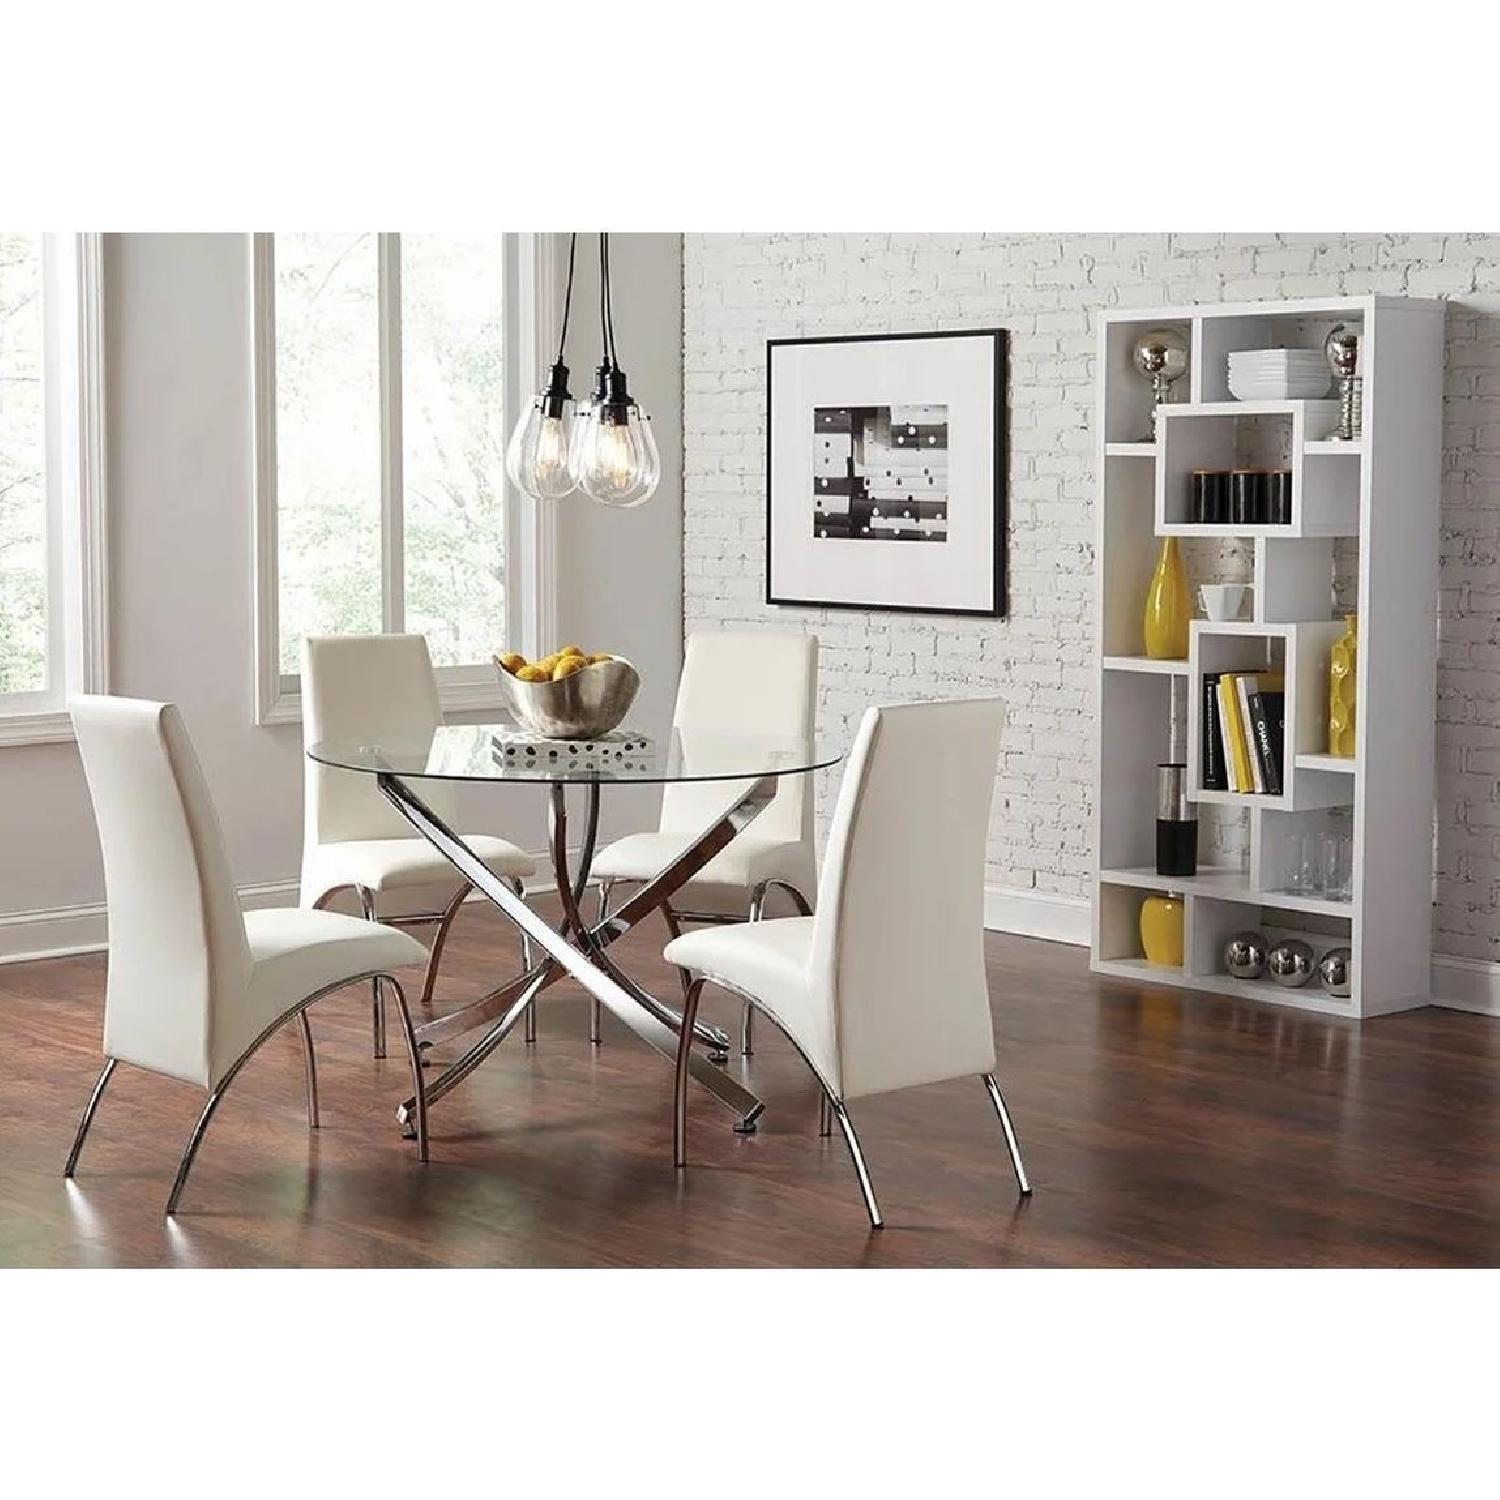 Bohemian Style Round Dining Table w/ Hand-Hammered Iron Top - image-9